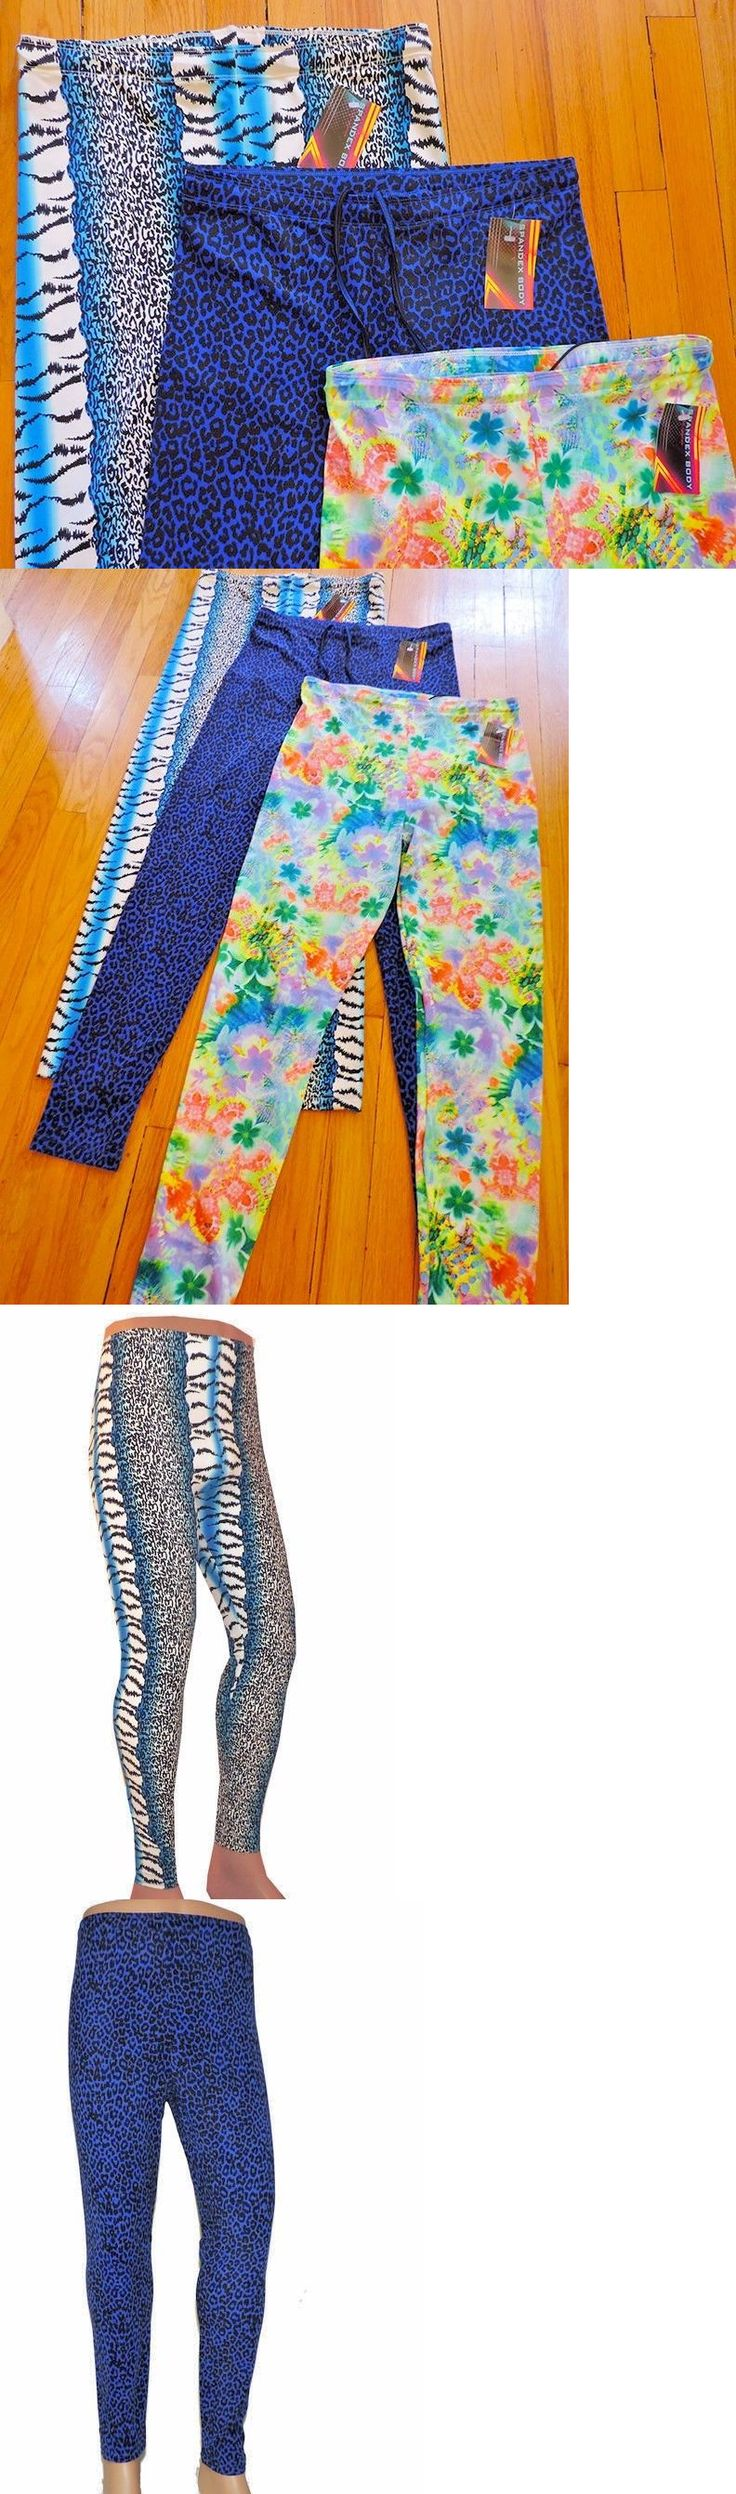 Clothing 79796: Lot 3 Xl Wrestling Tights Animal Floral Neon Leopard Festival Edm Cos Play -> BUY IT NOW ONLY: $60 on eBay!